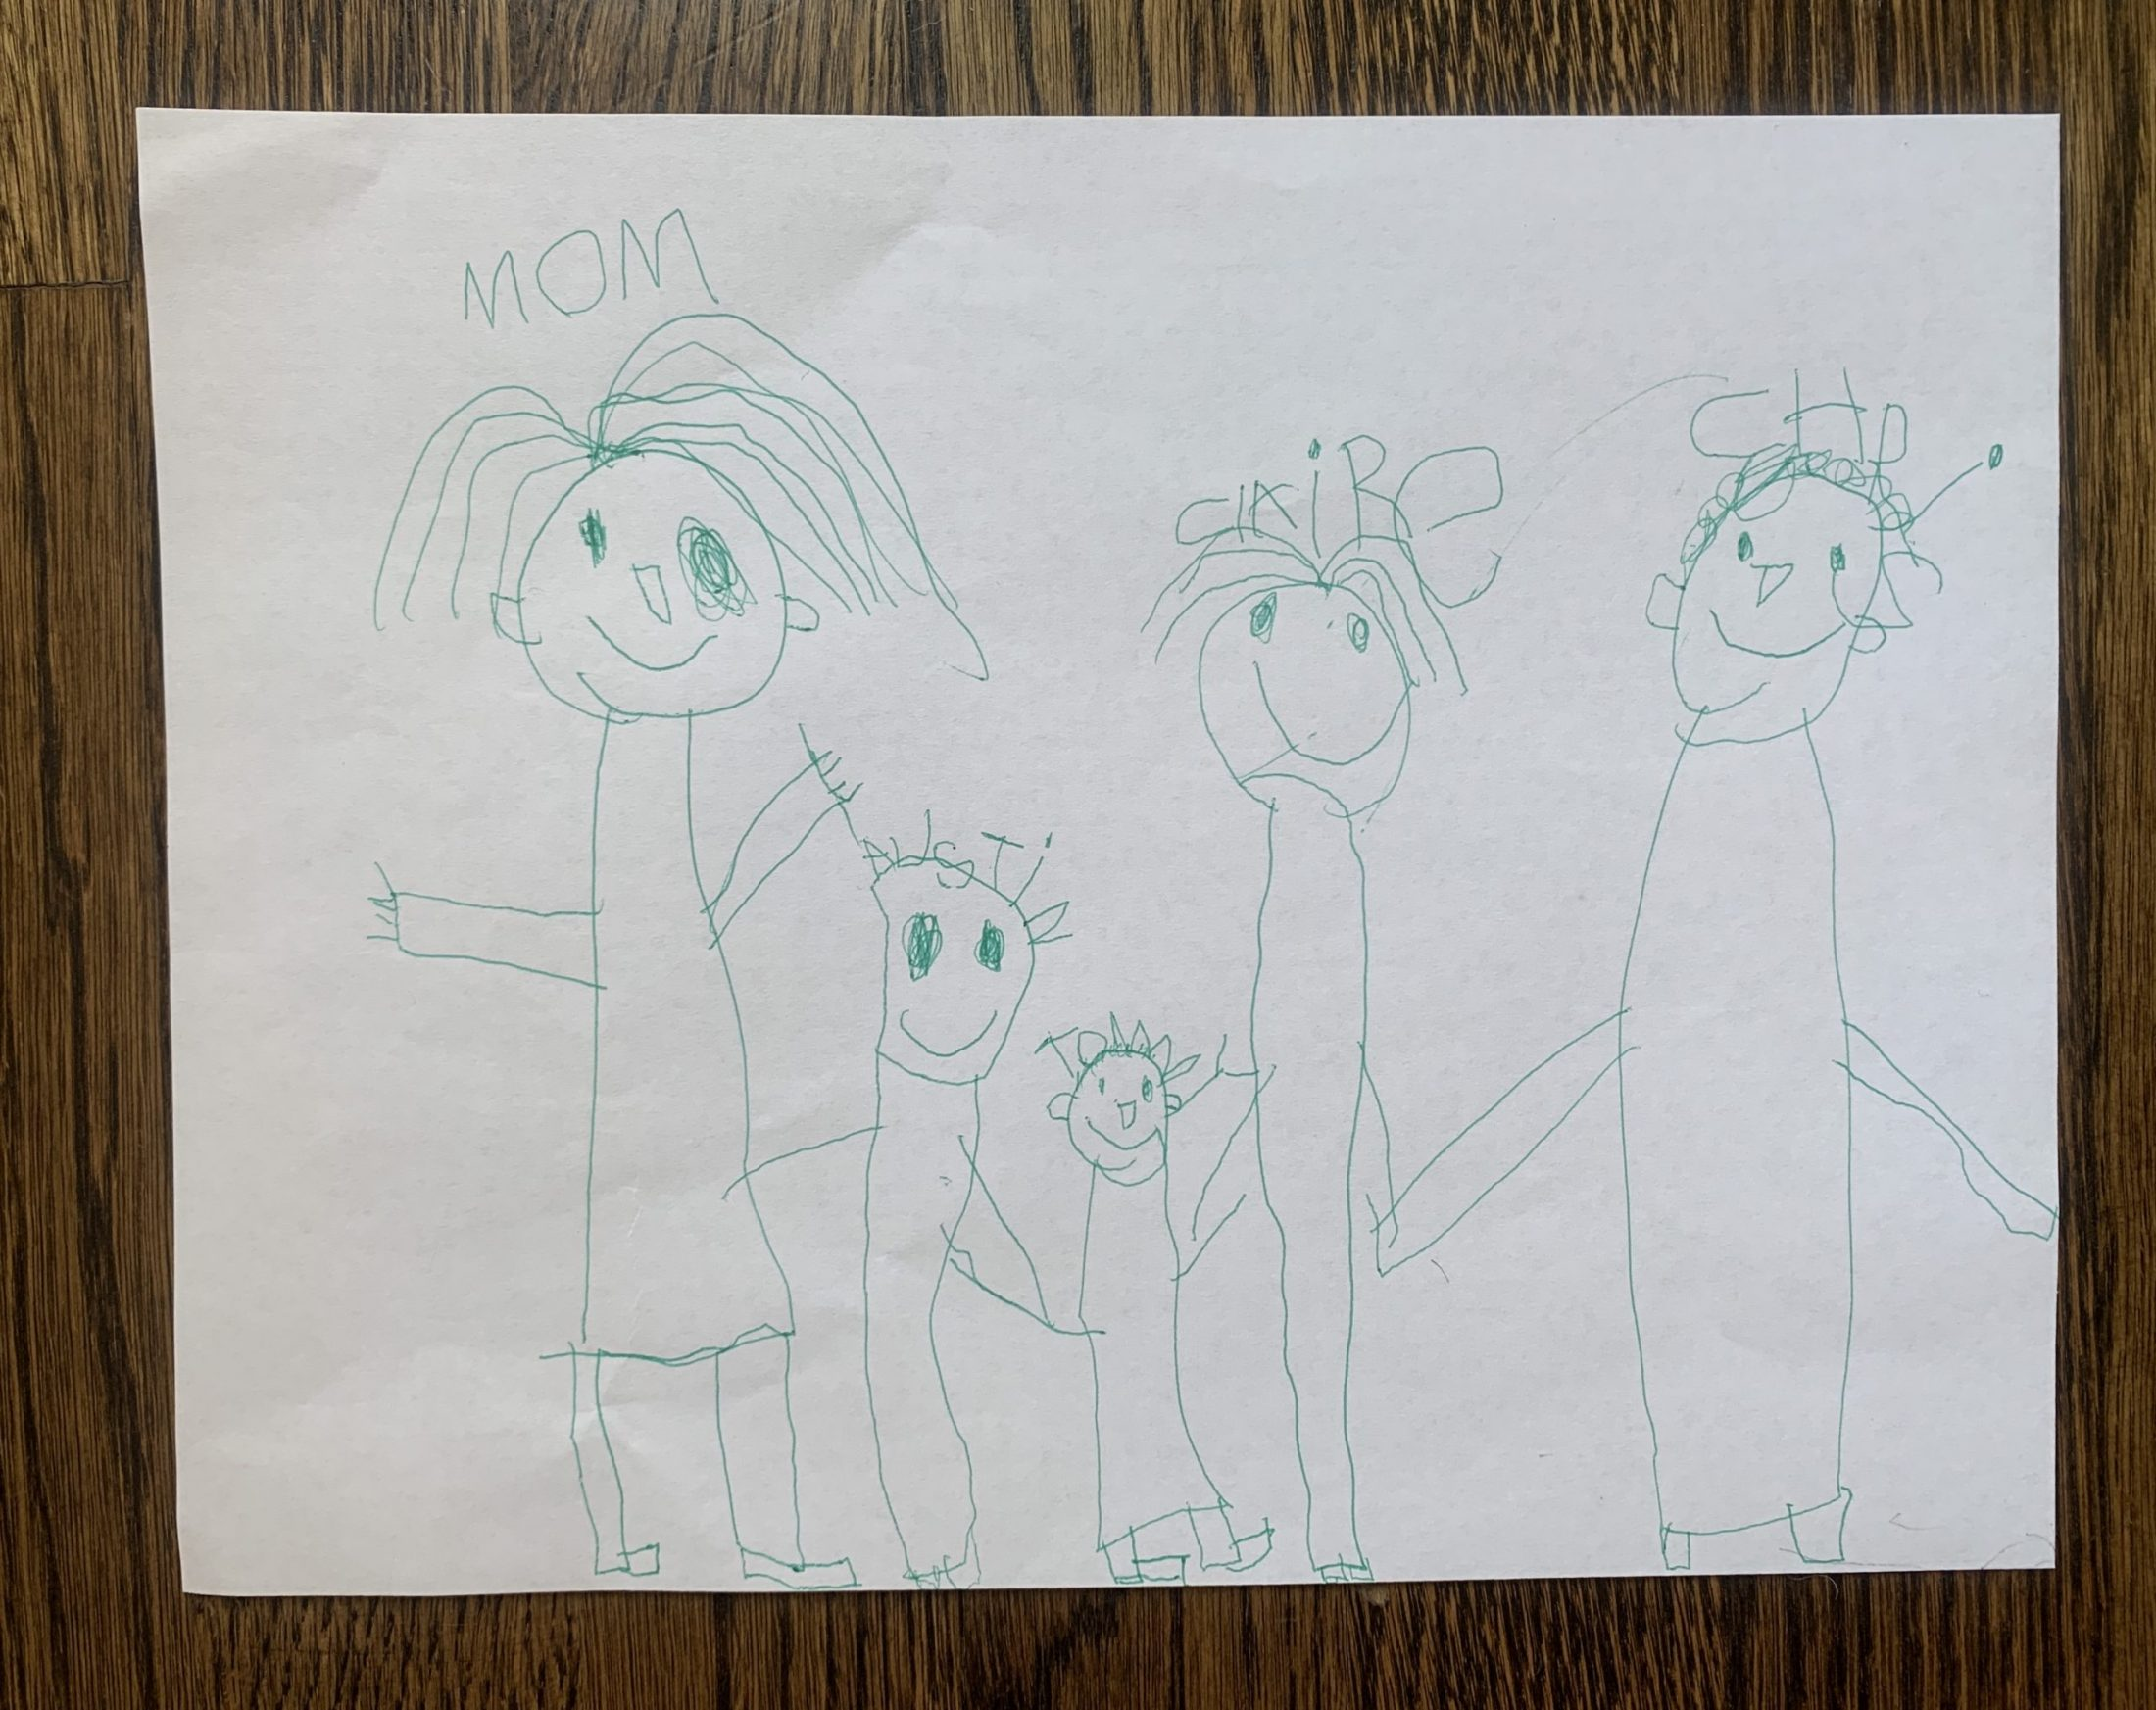 Drawing of family by son of DC widow blog writer Marjorie Brimley